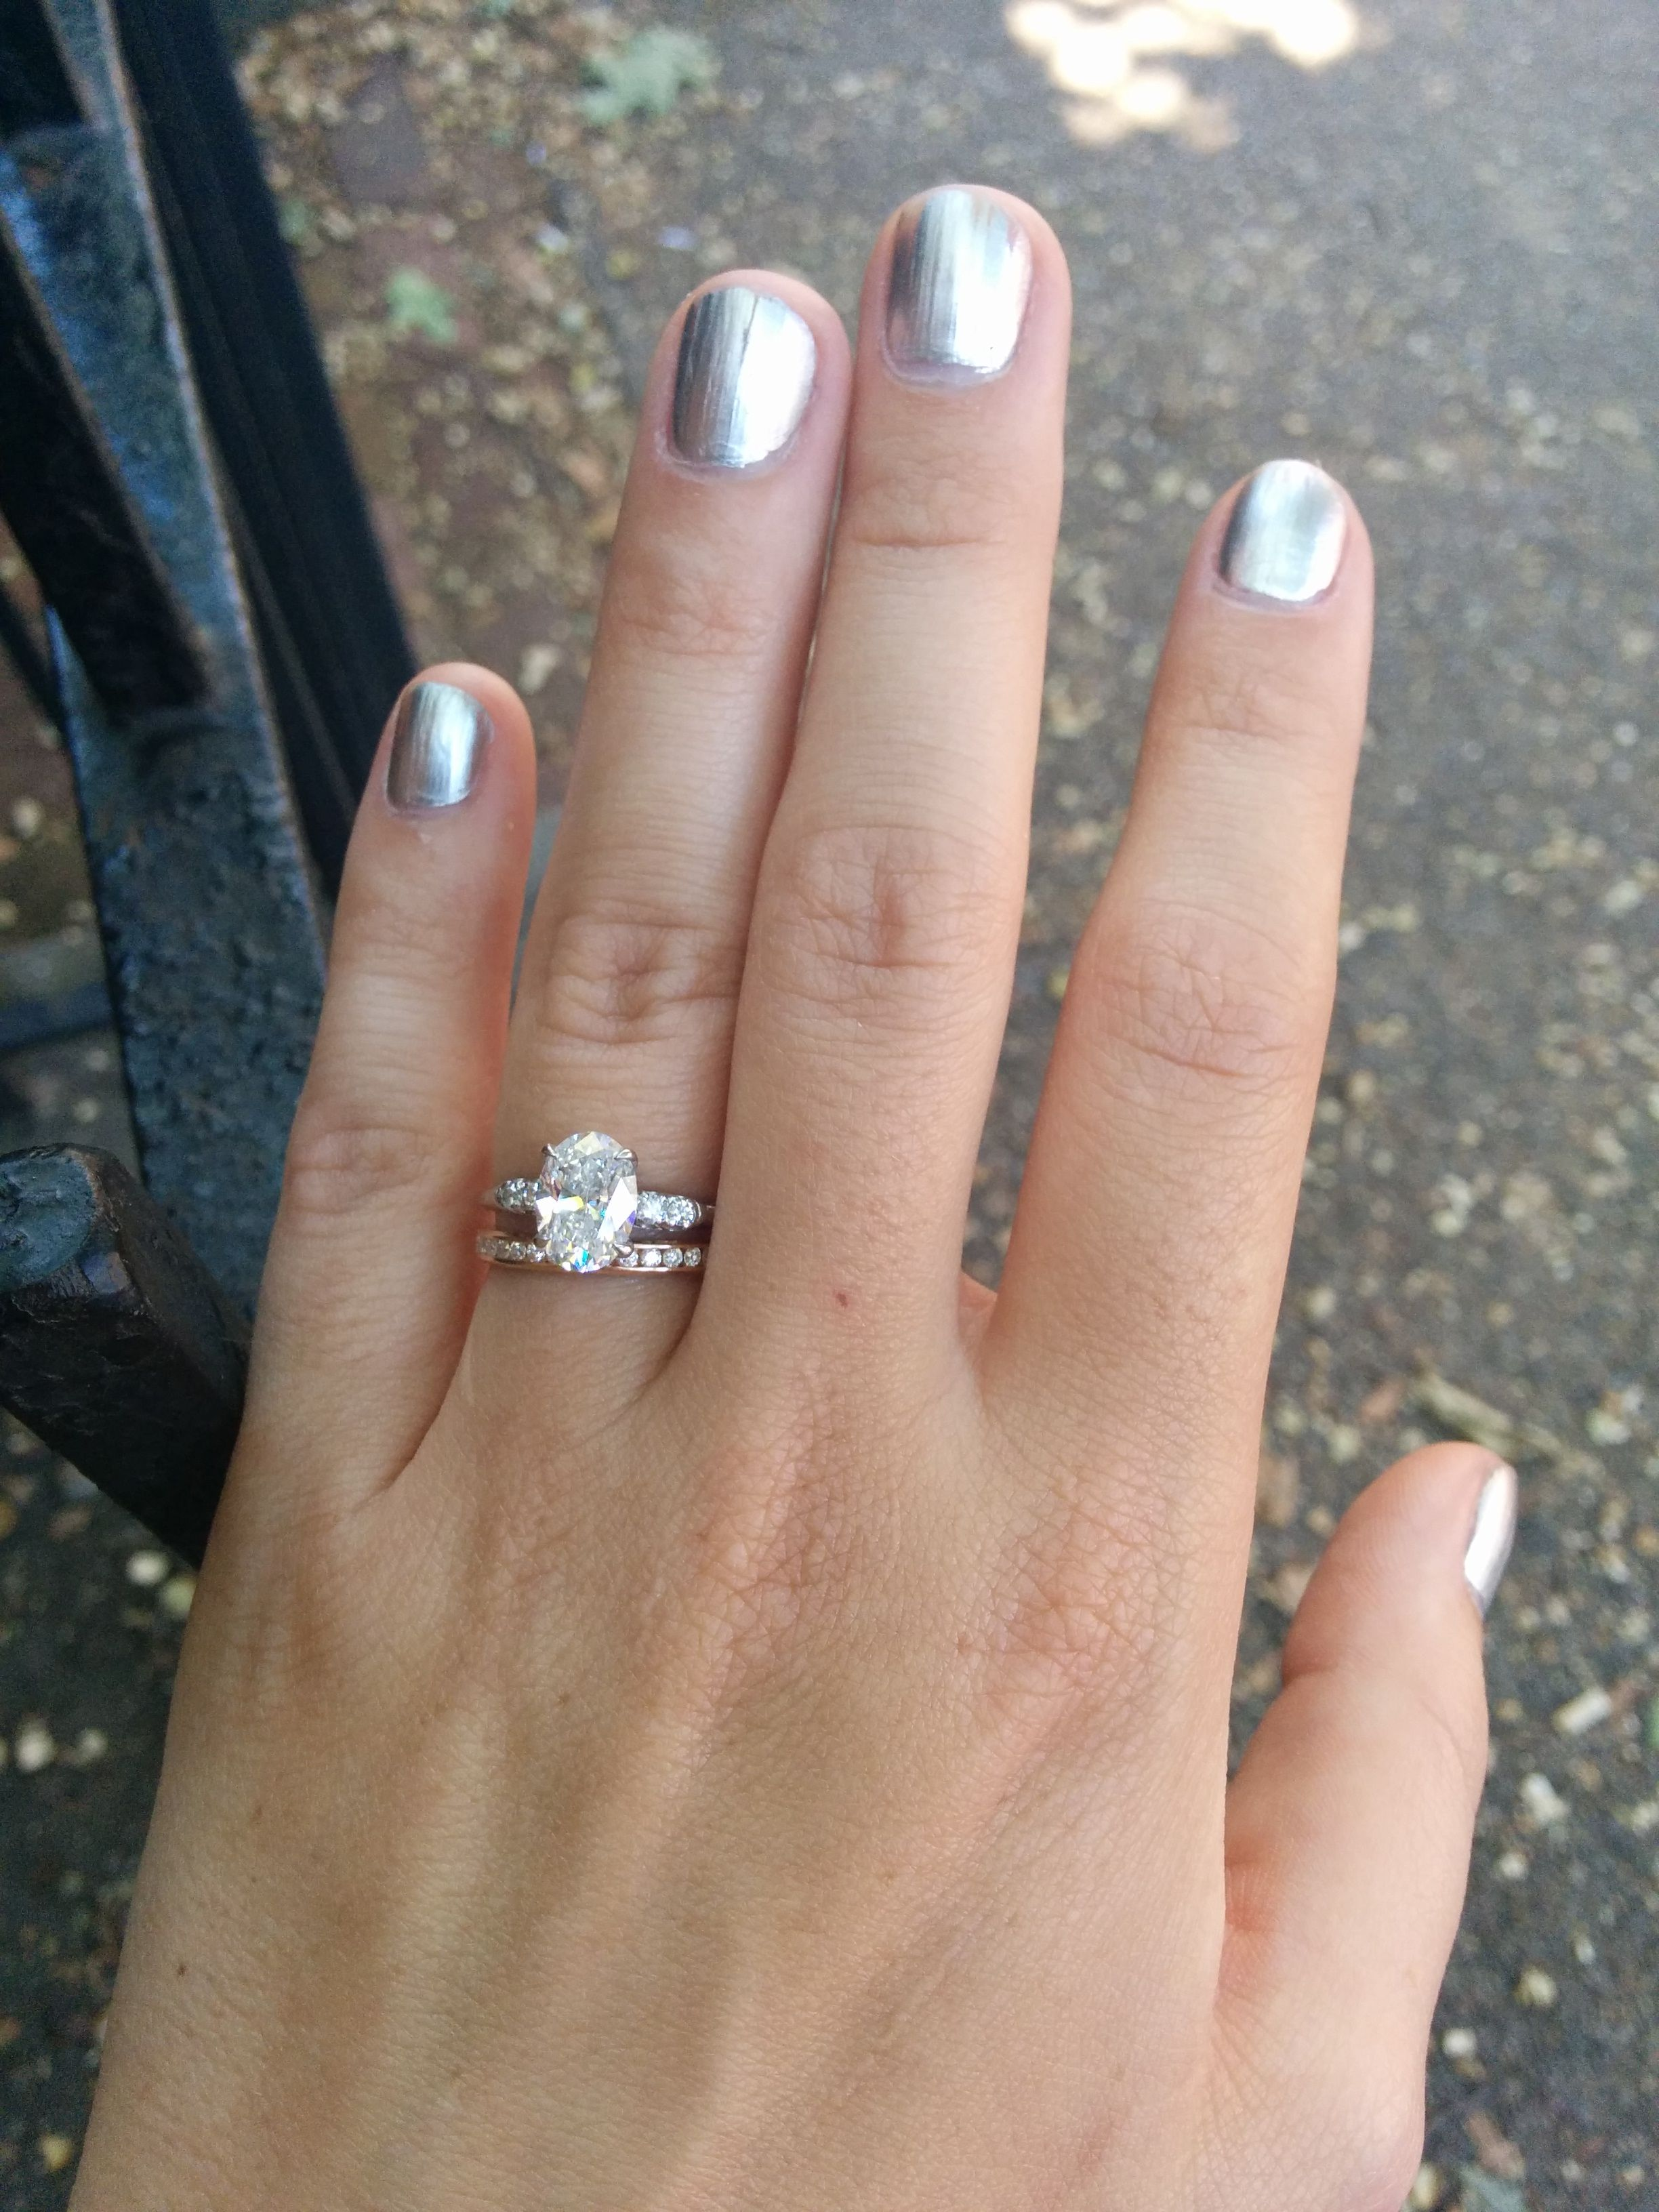 Show me your solitaire rings with an eternity diamond wedding band